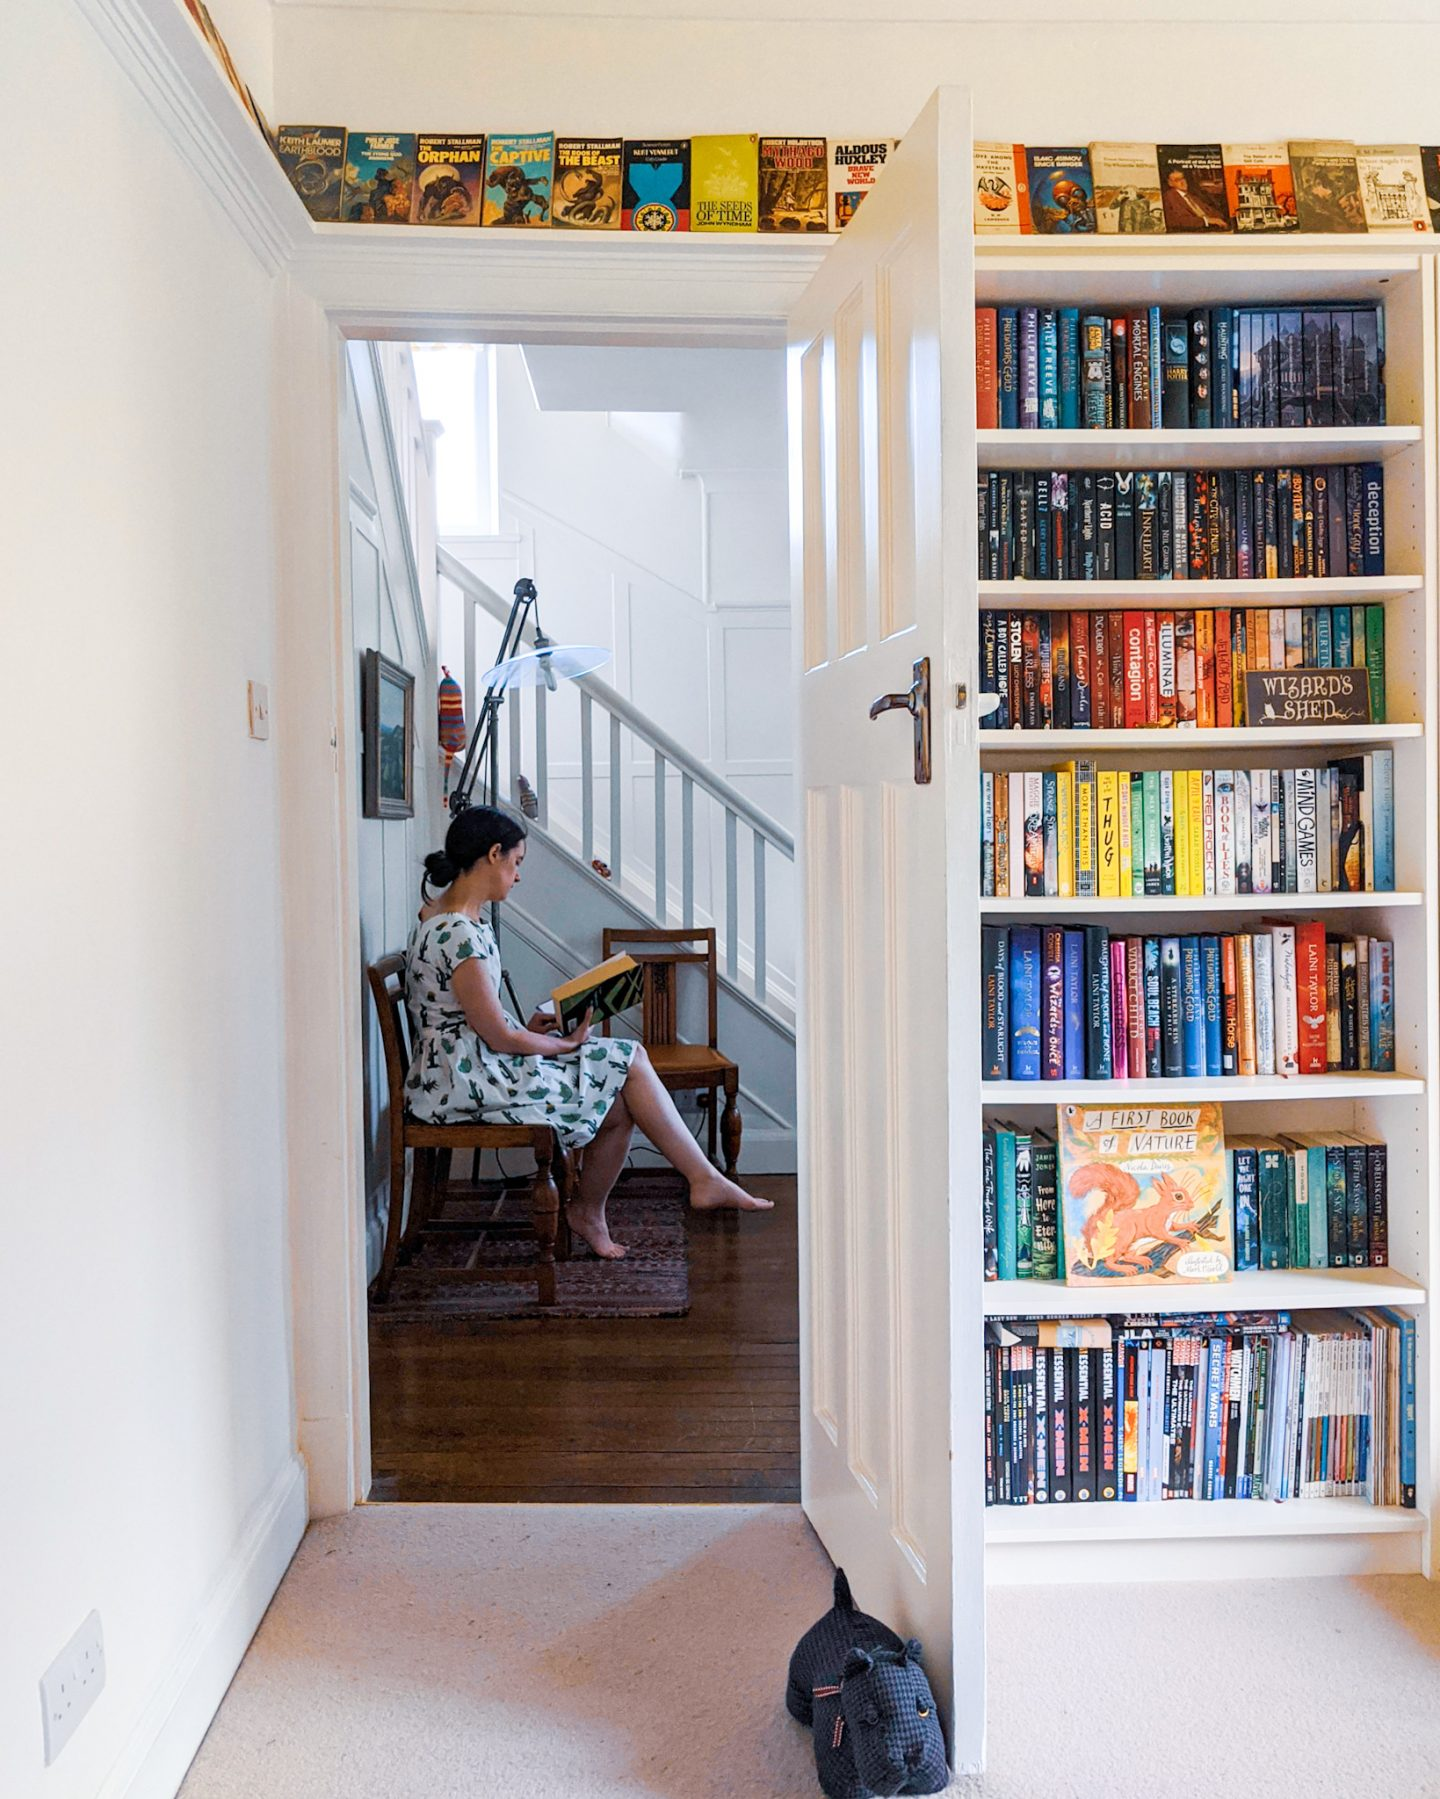 25 Bookstagram Post Ideas for Growing Your Account